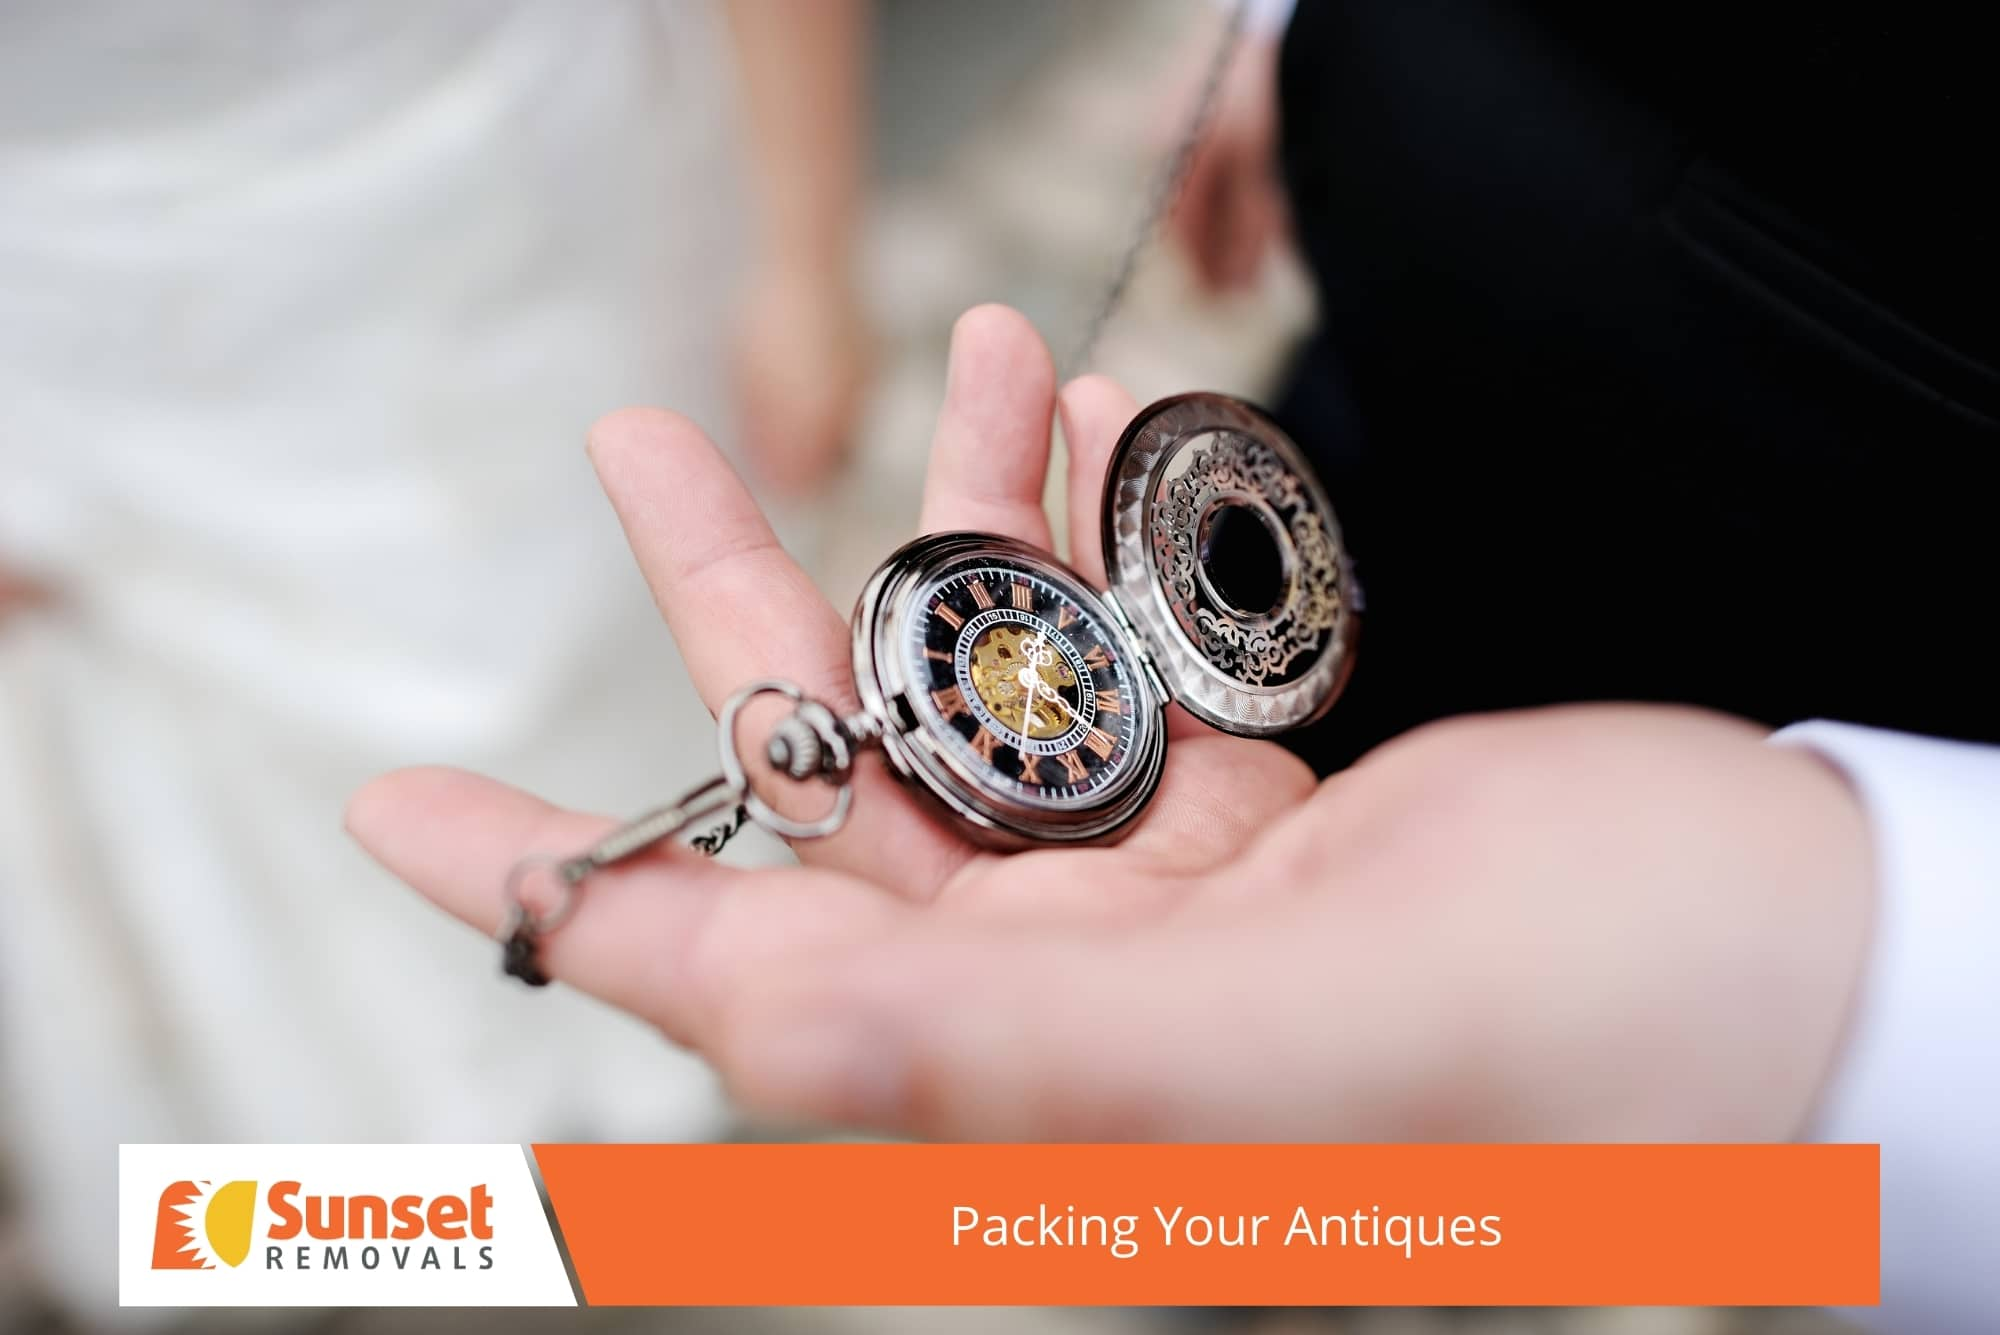 Packing Your Antiques